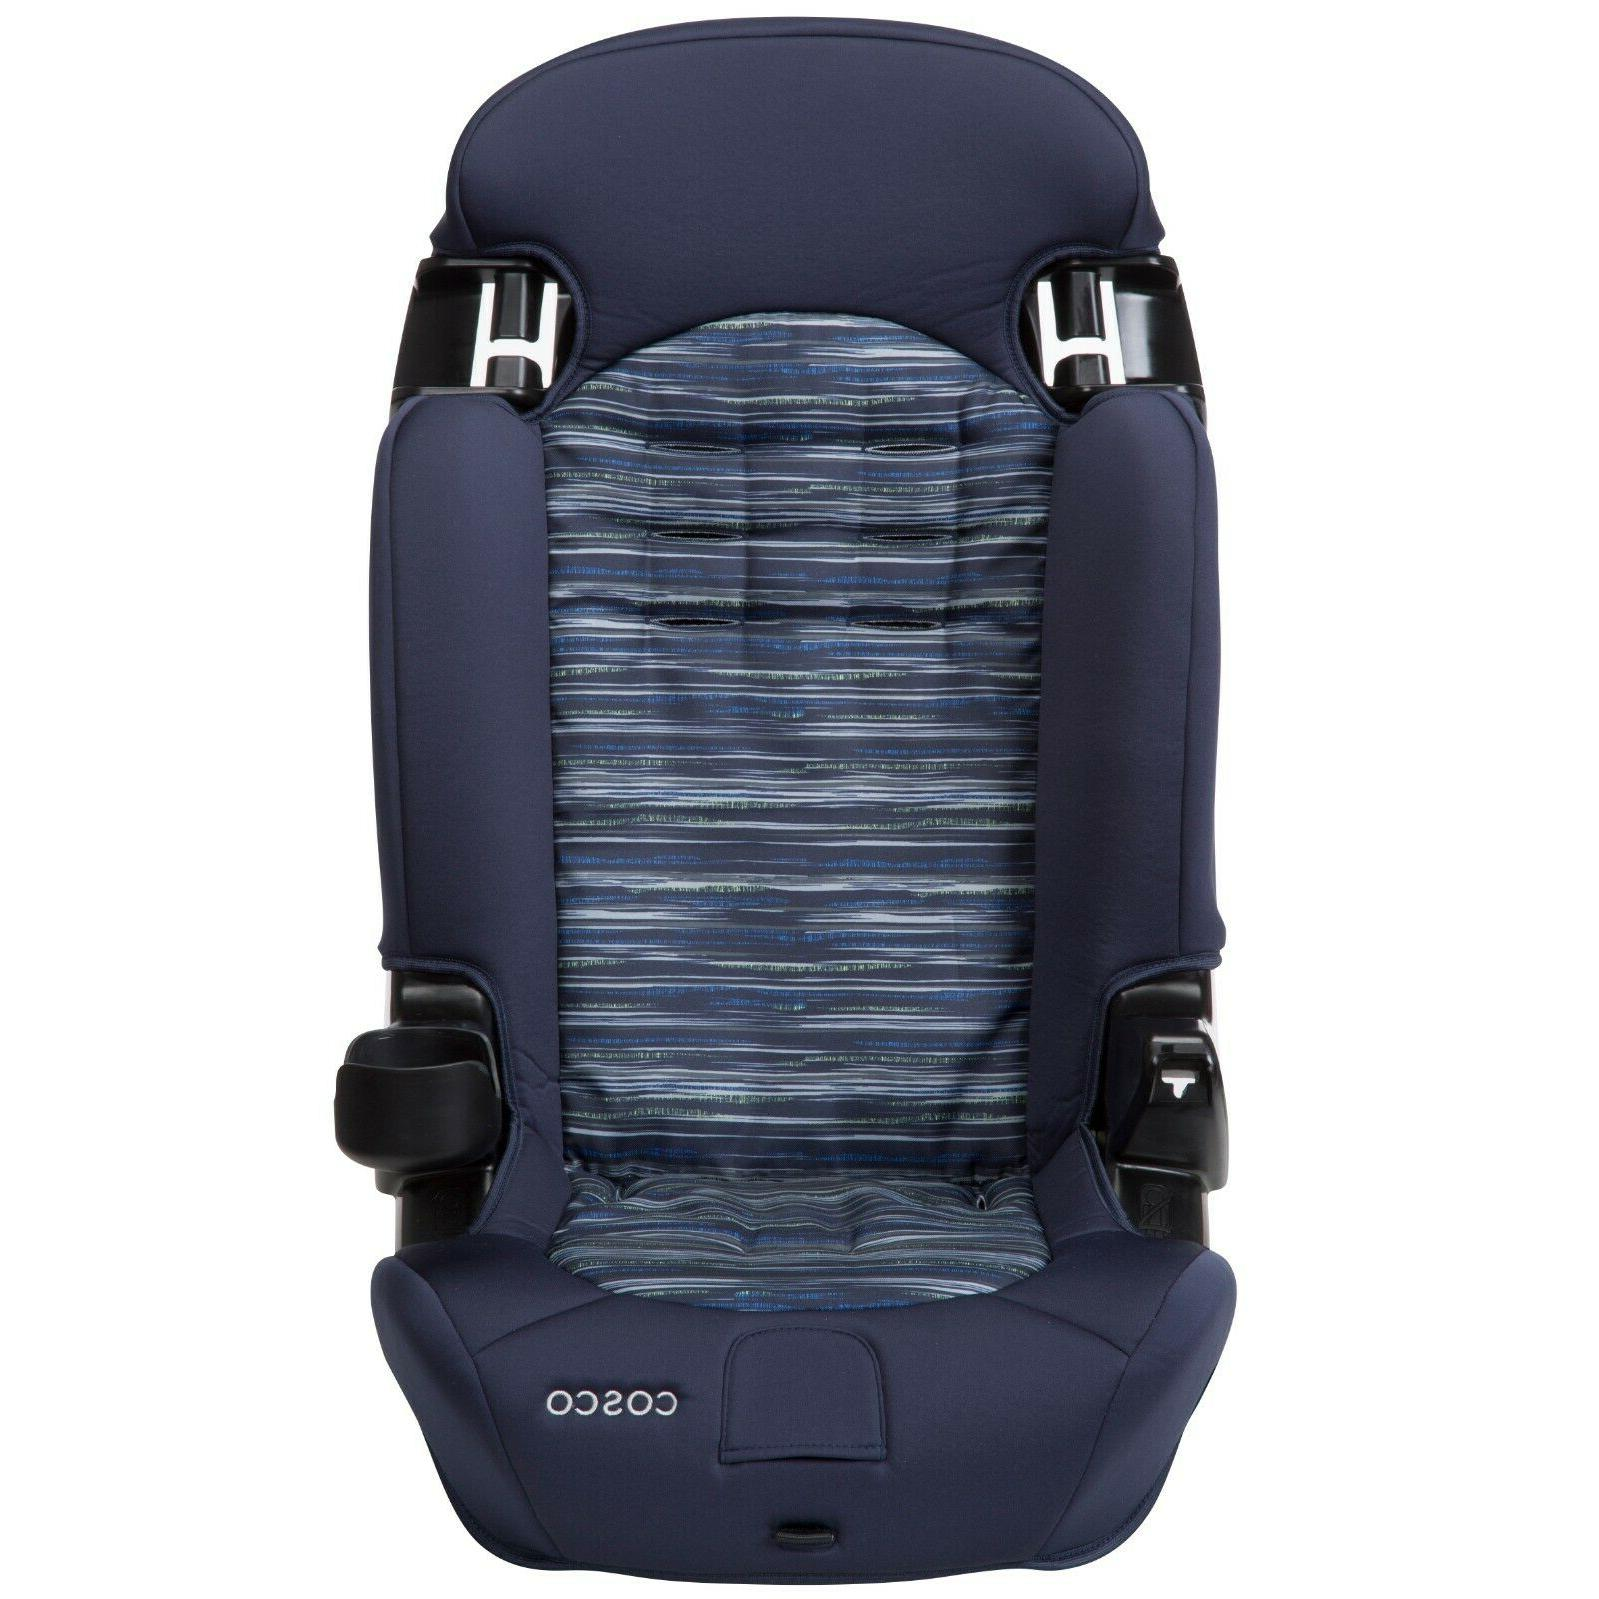 Baby Convertible Safety Car Seat Kids Chair Toddler